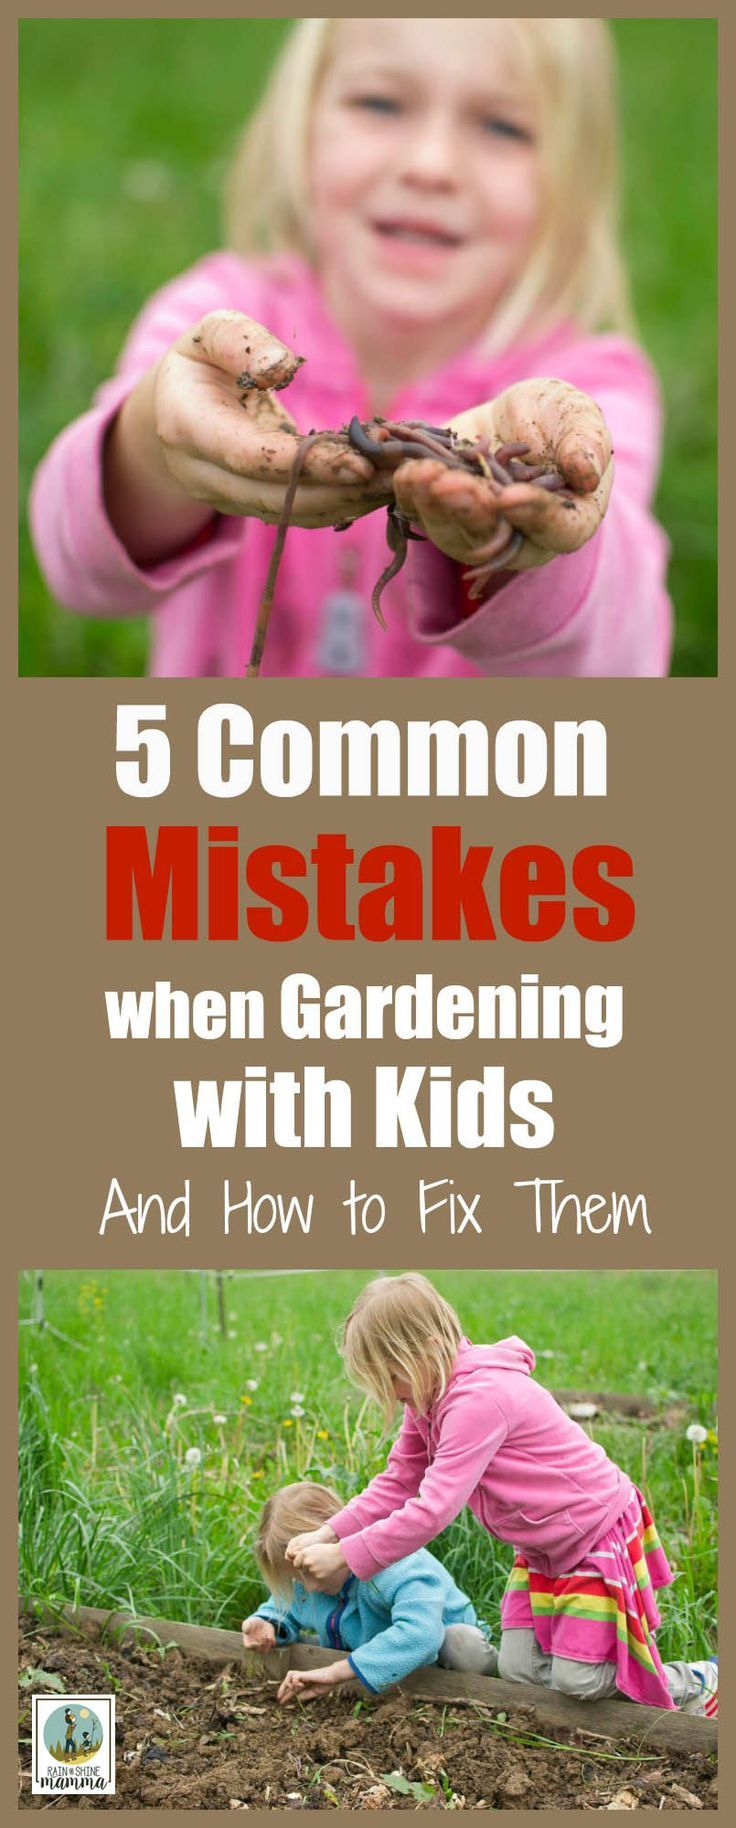 5 common mistakes when gardening with kids and how to fix them